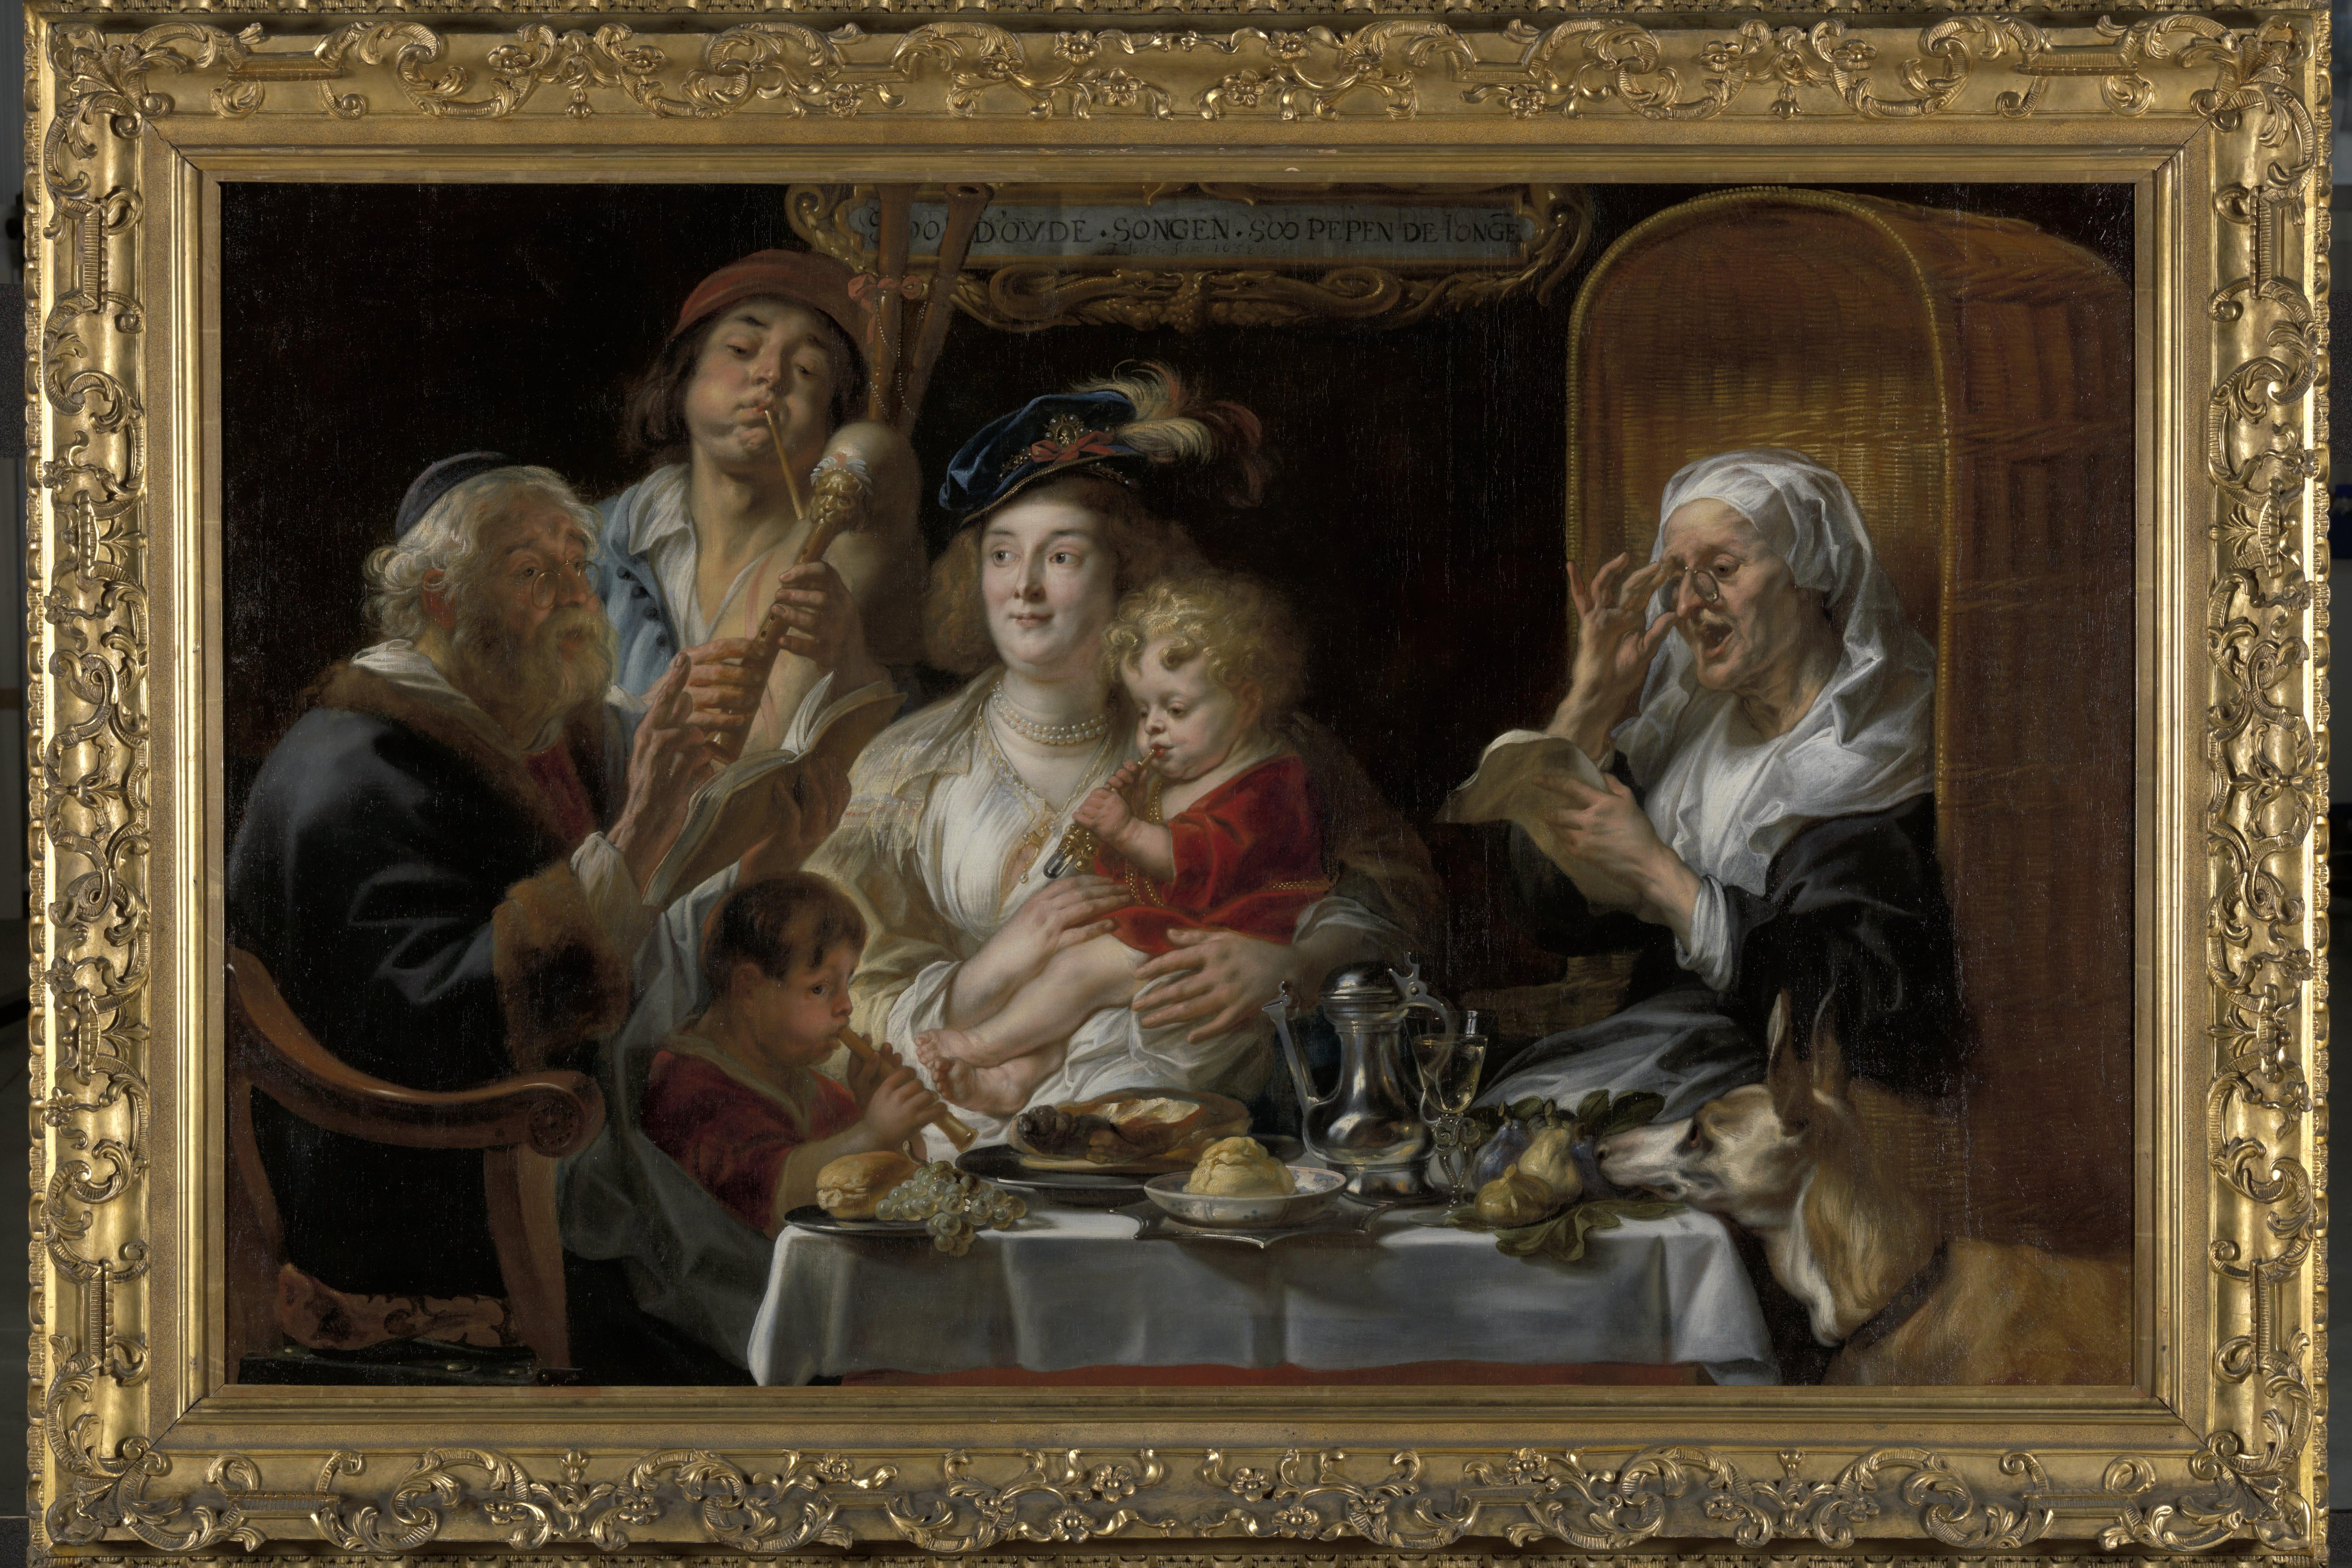 Jacob Jordaens I, The old Folks sing, the young Folks chirp, Royal Museum of Fine Arts, Antwerp